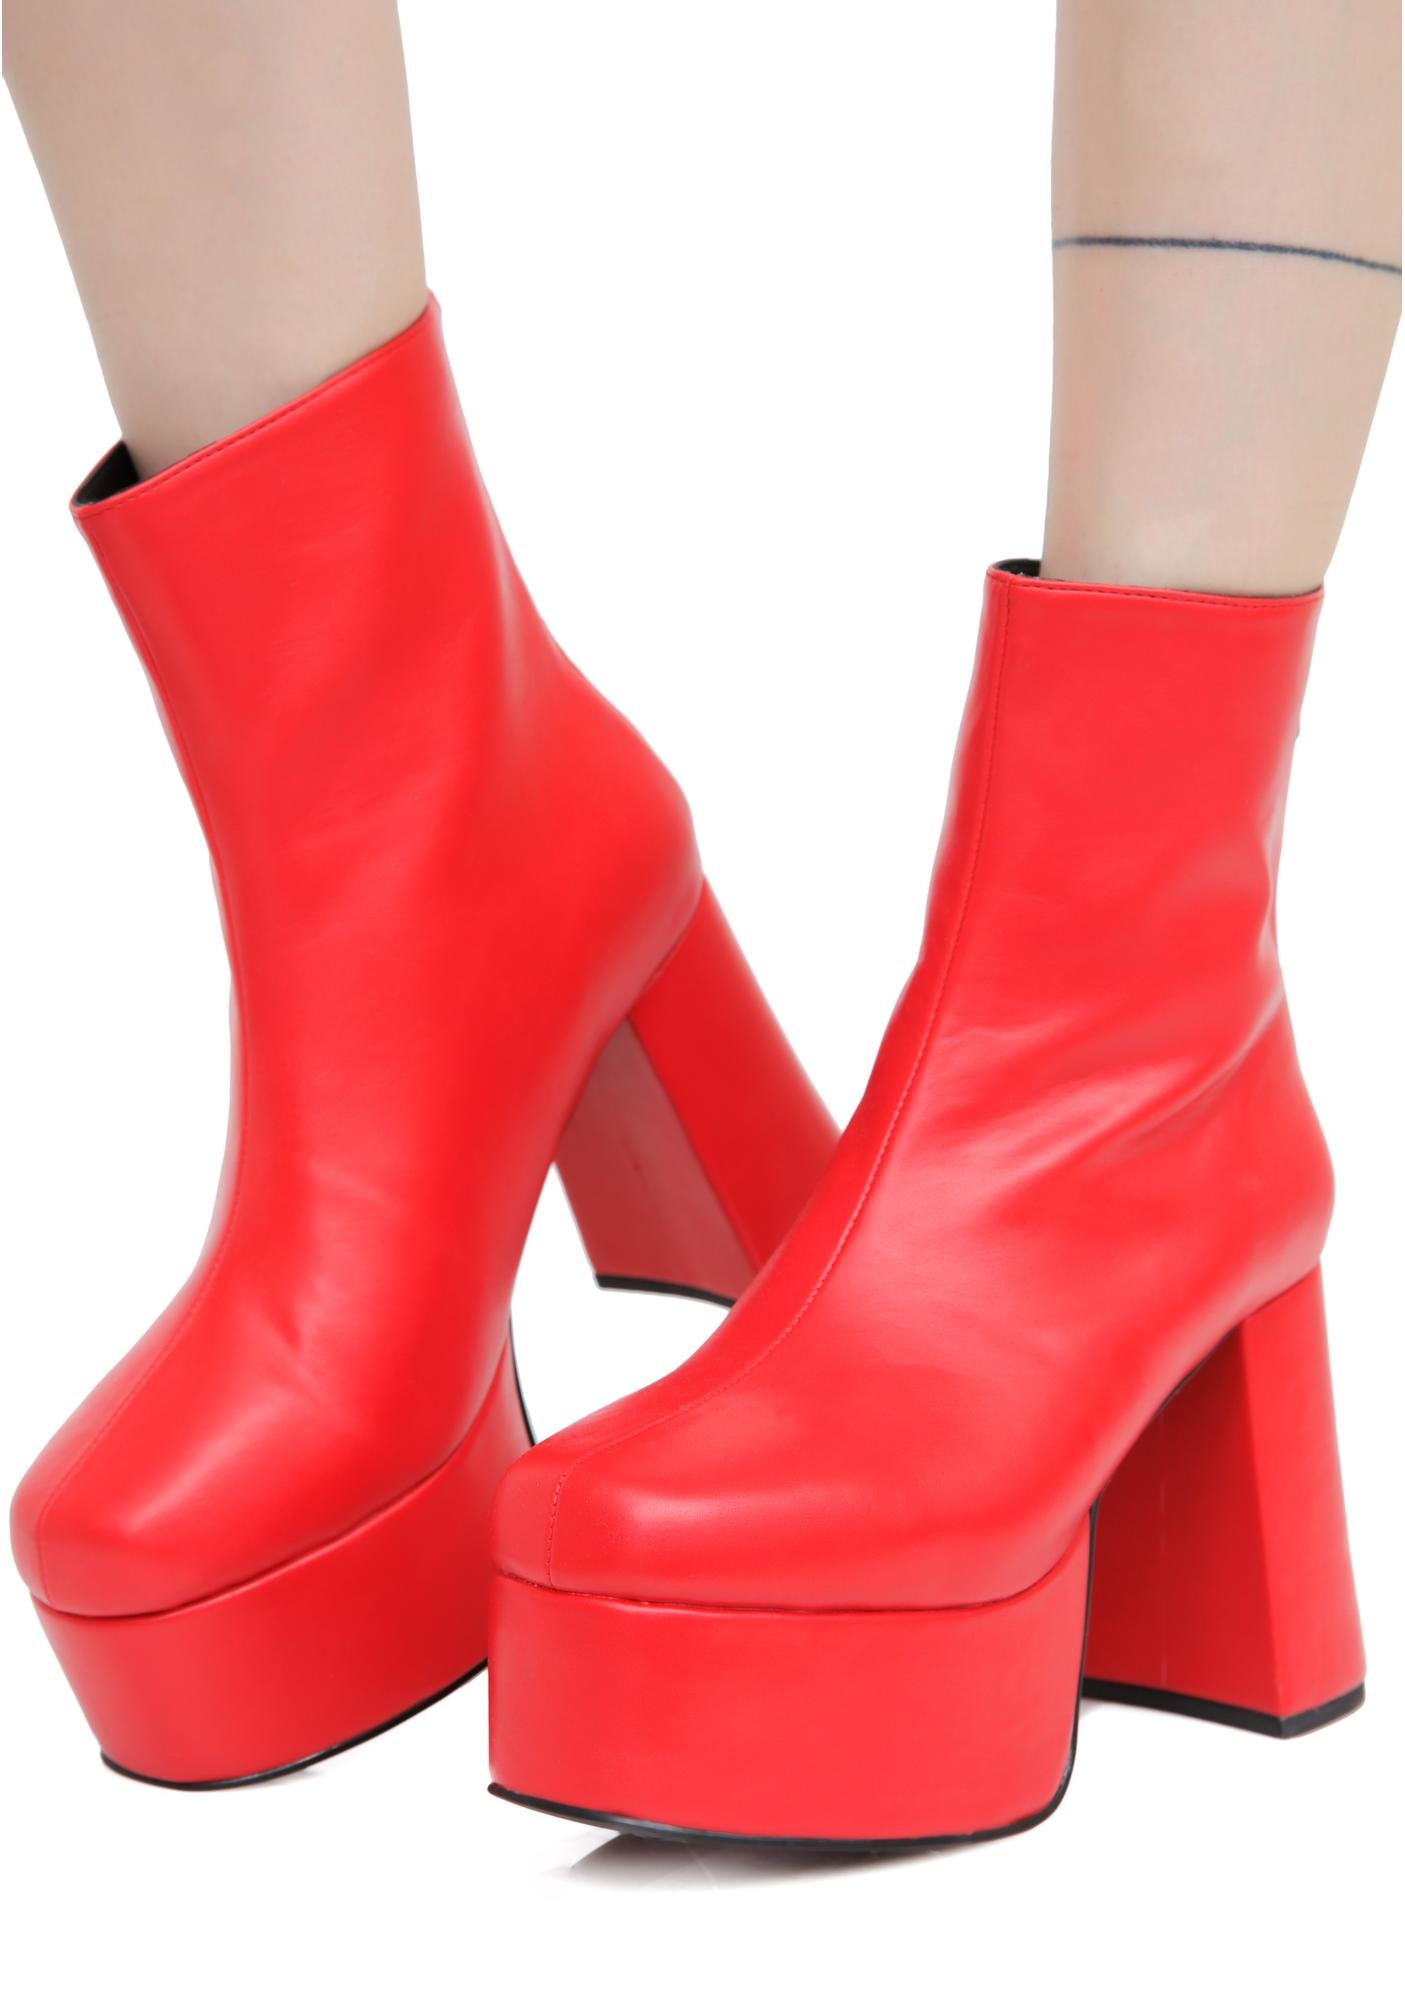 Red Womens Platform Shoes Sale: Save Up to 60% Off! Shop worldofweapons.tk's huge selection of Red Platform Shoes for Women - Over styles available. FREE Shipping & .